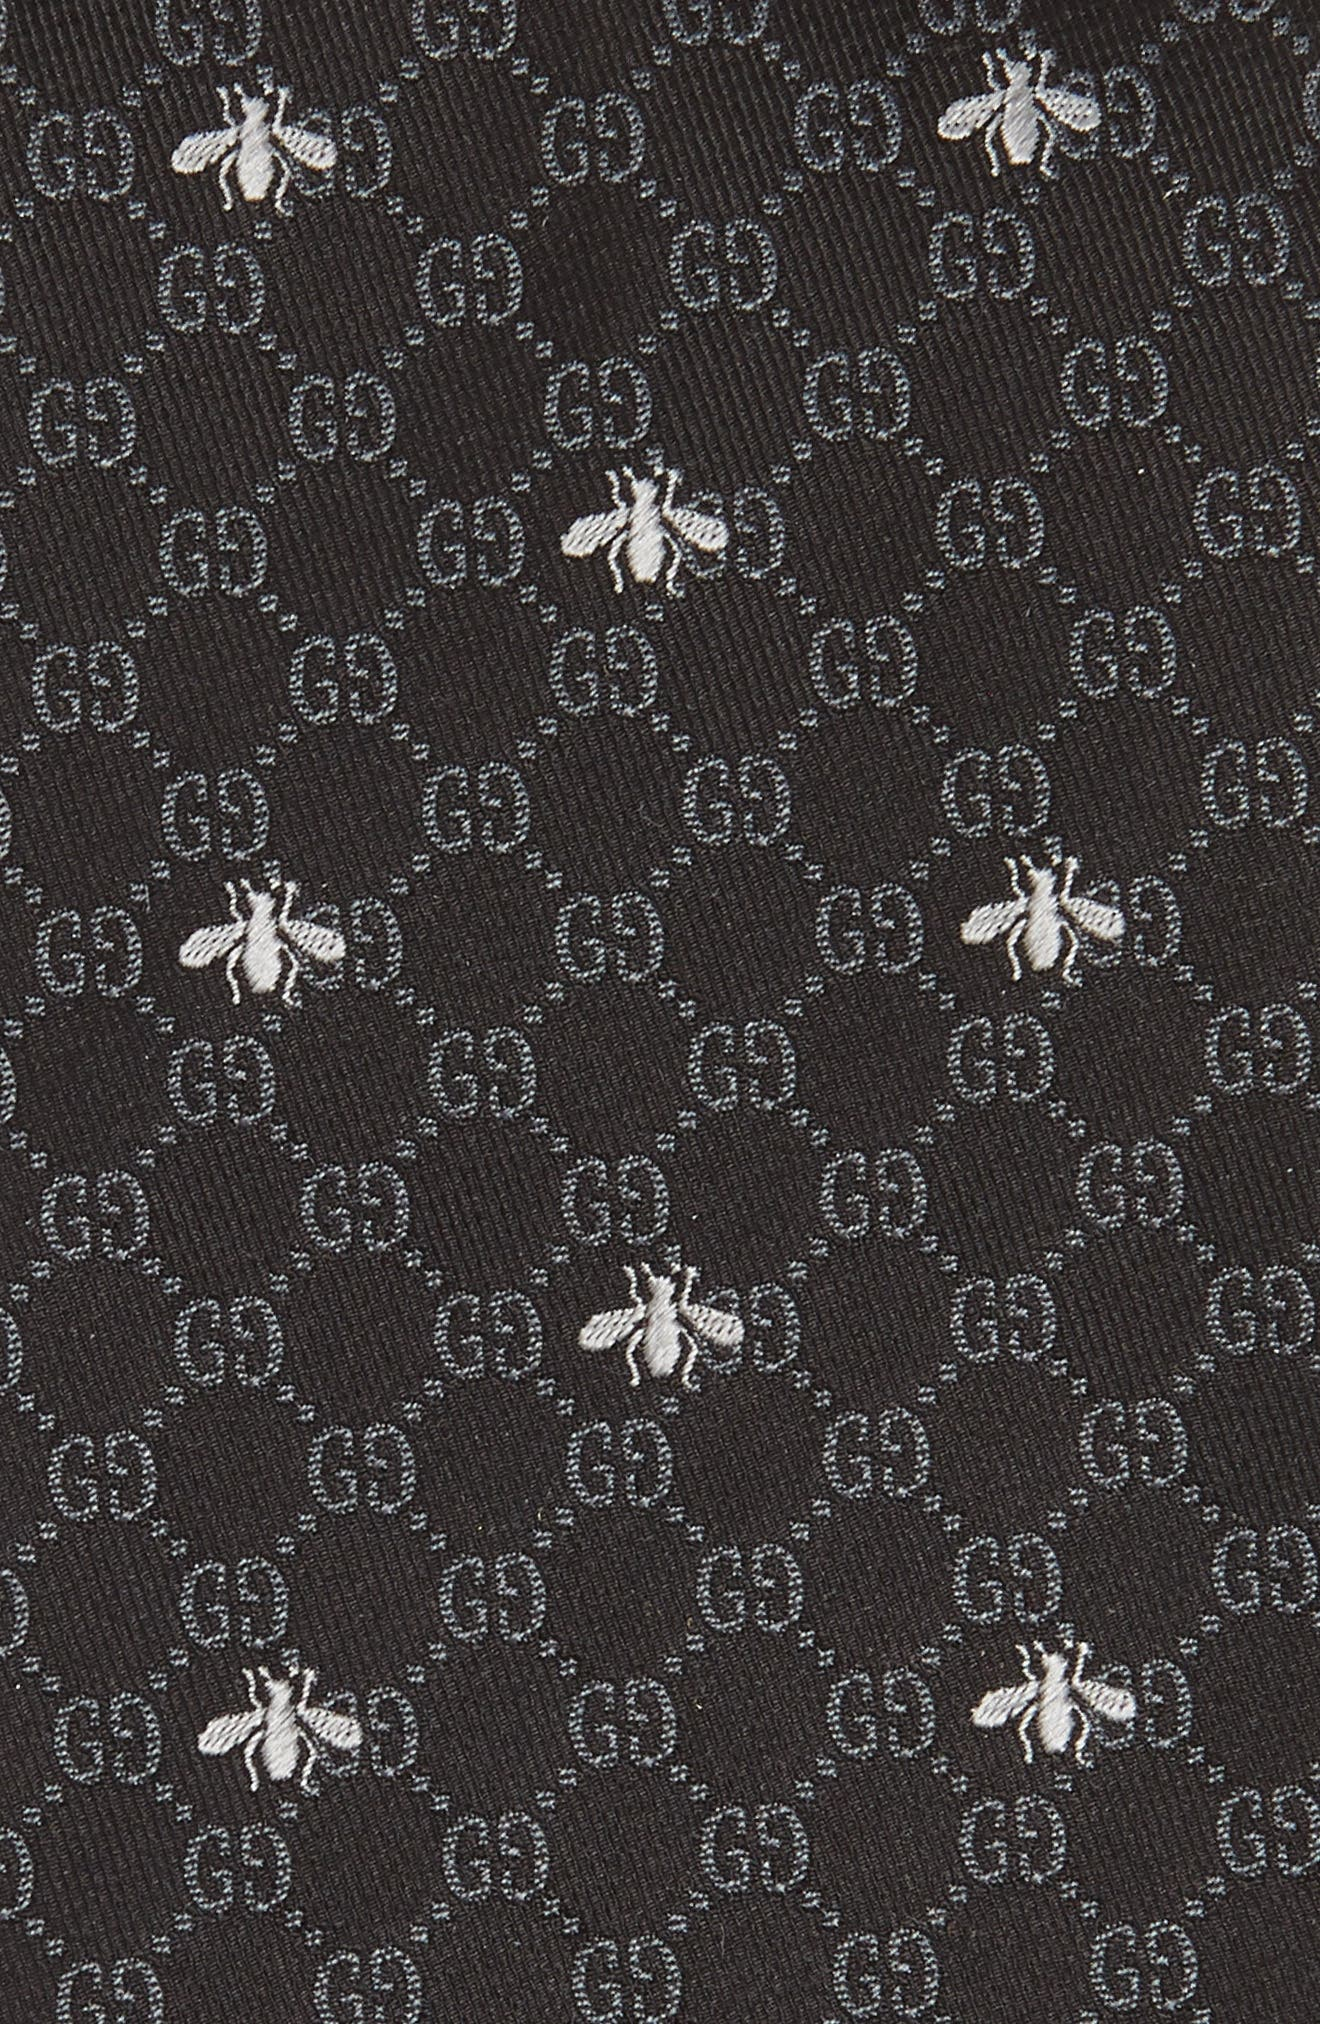 GG Bee Silk Tie,                             Alternate thumbnail 2, color,                             BLACK AND GREY